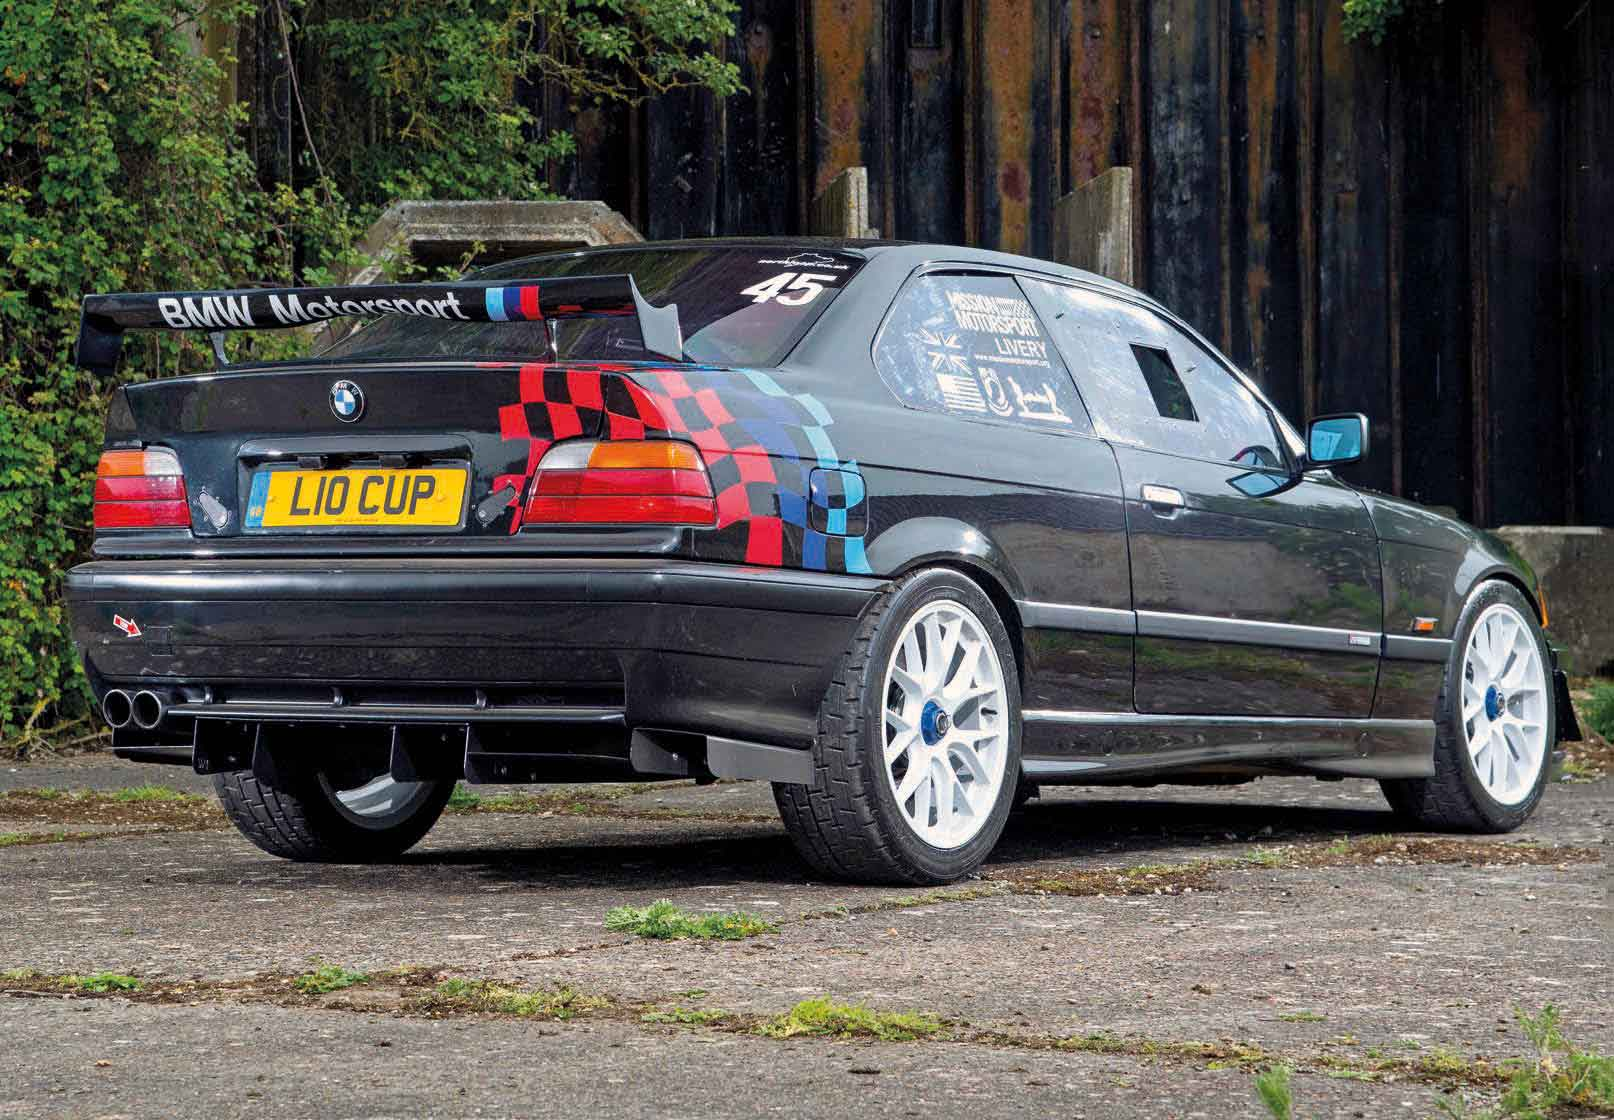 The Epic Tuned Bmw M3 E36 Track Car Road Test Drive My Blogs Drive